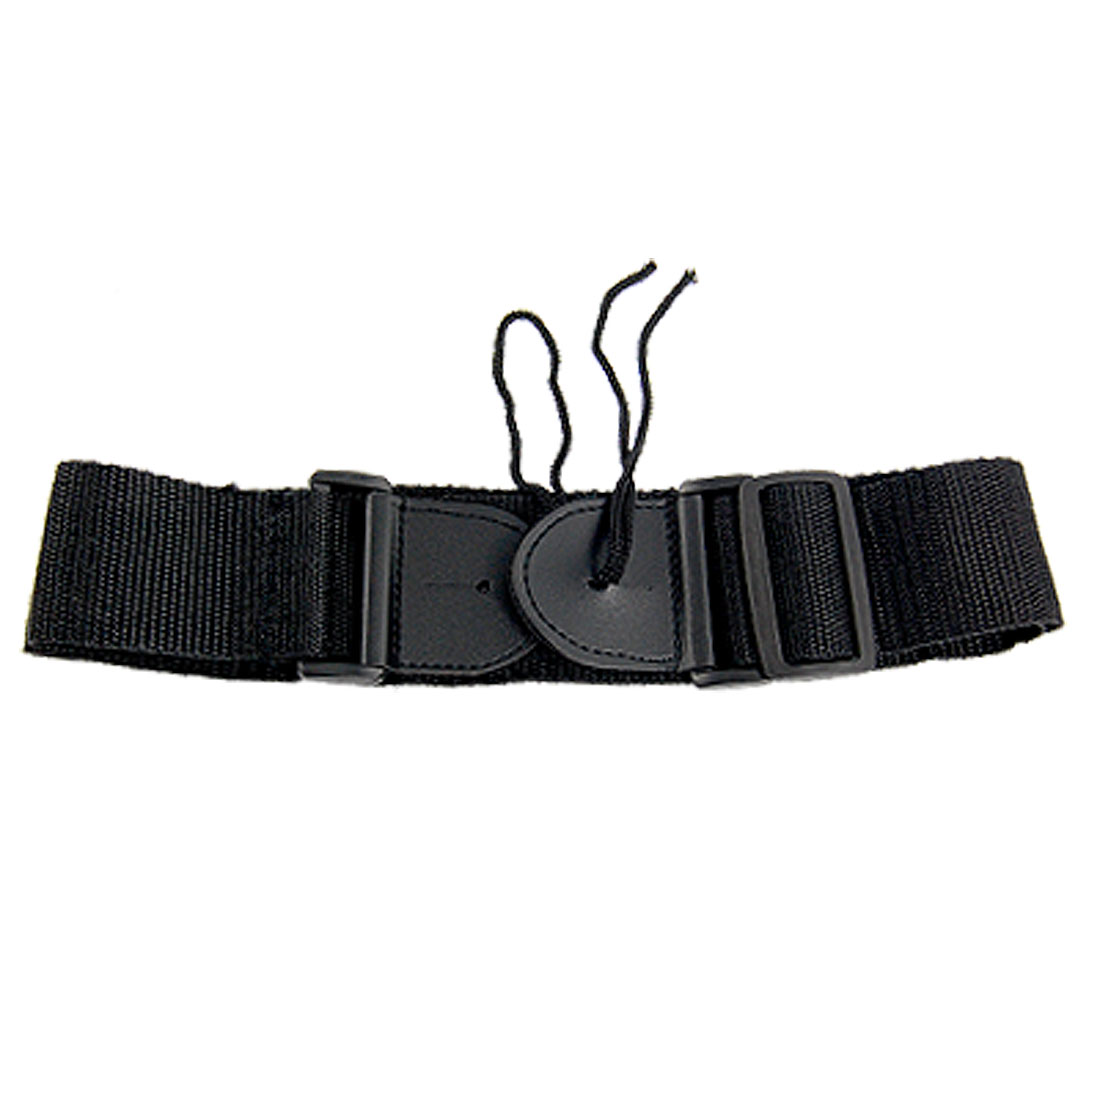 Solid Black Nylon Adjustable Guitar Shoulder Strap